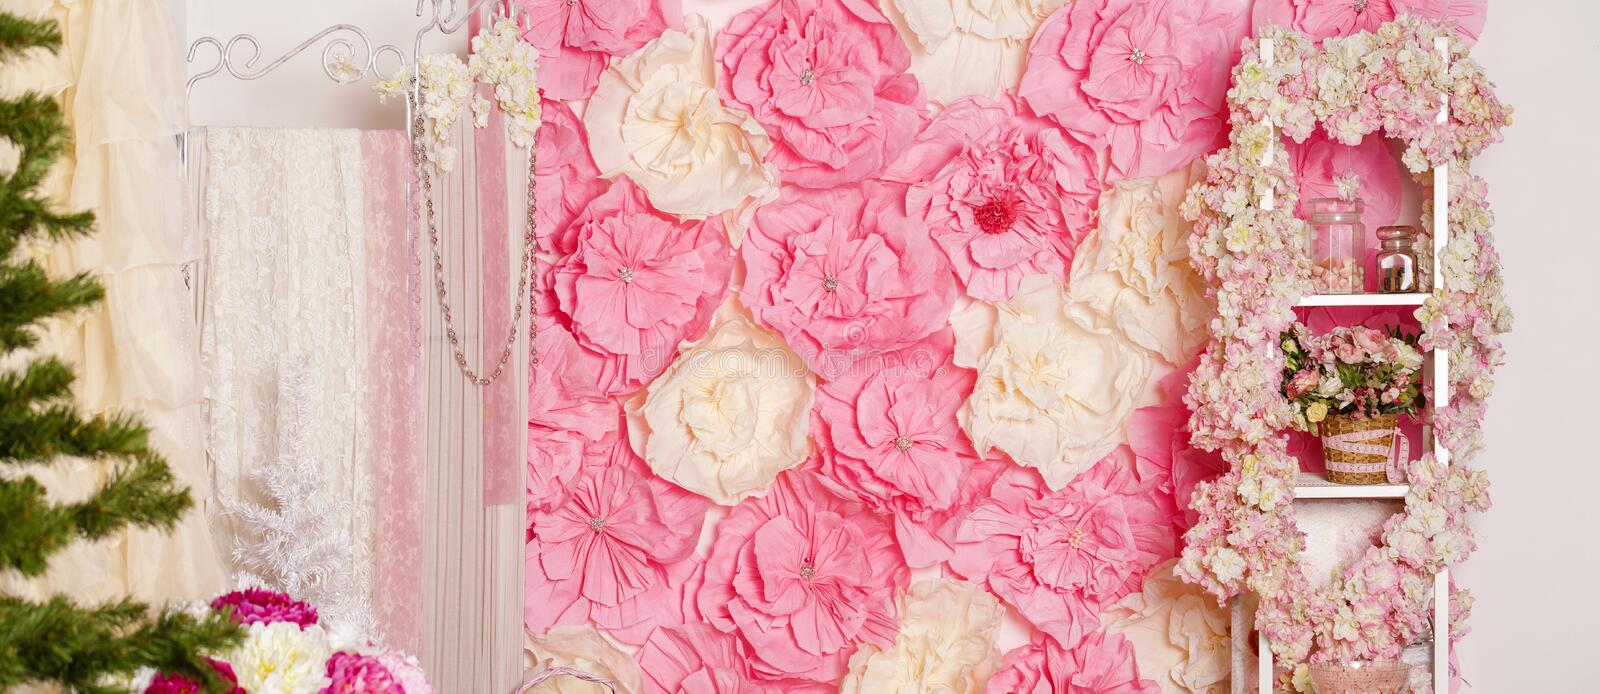 Part of the interior studio. Pink paper flowers stock photography